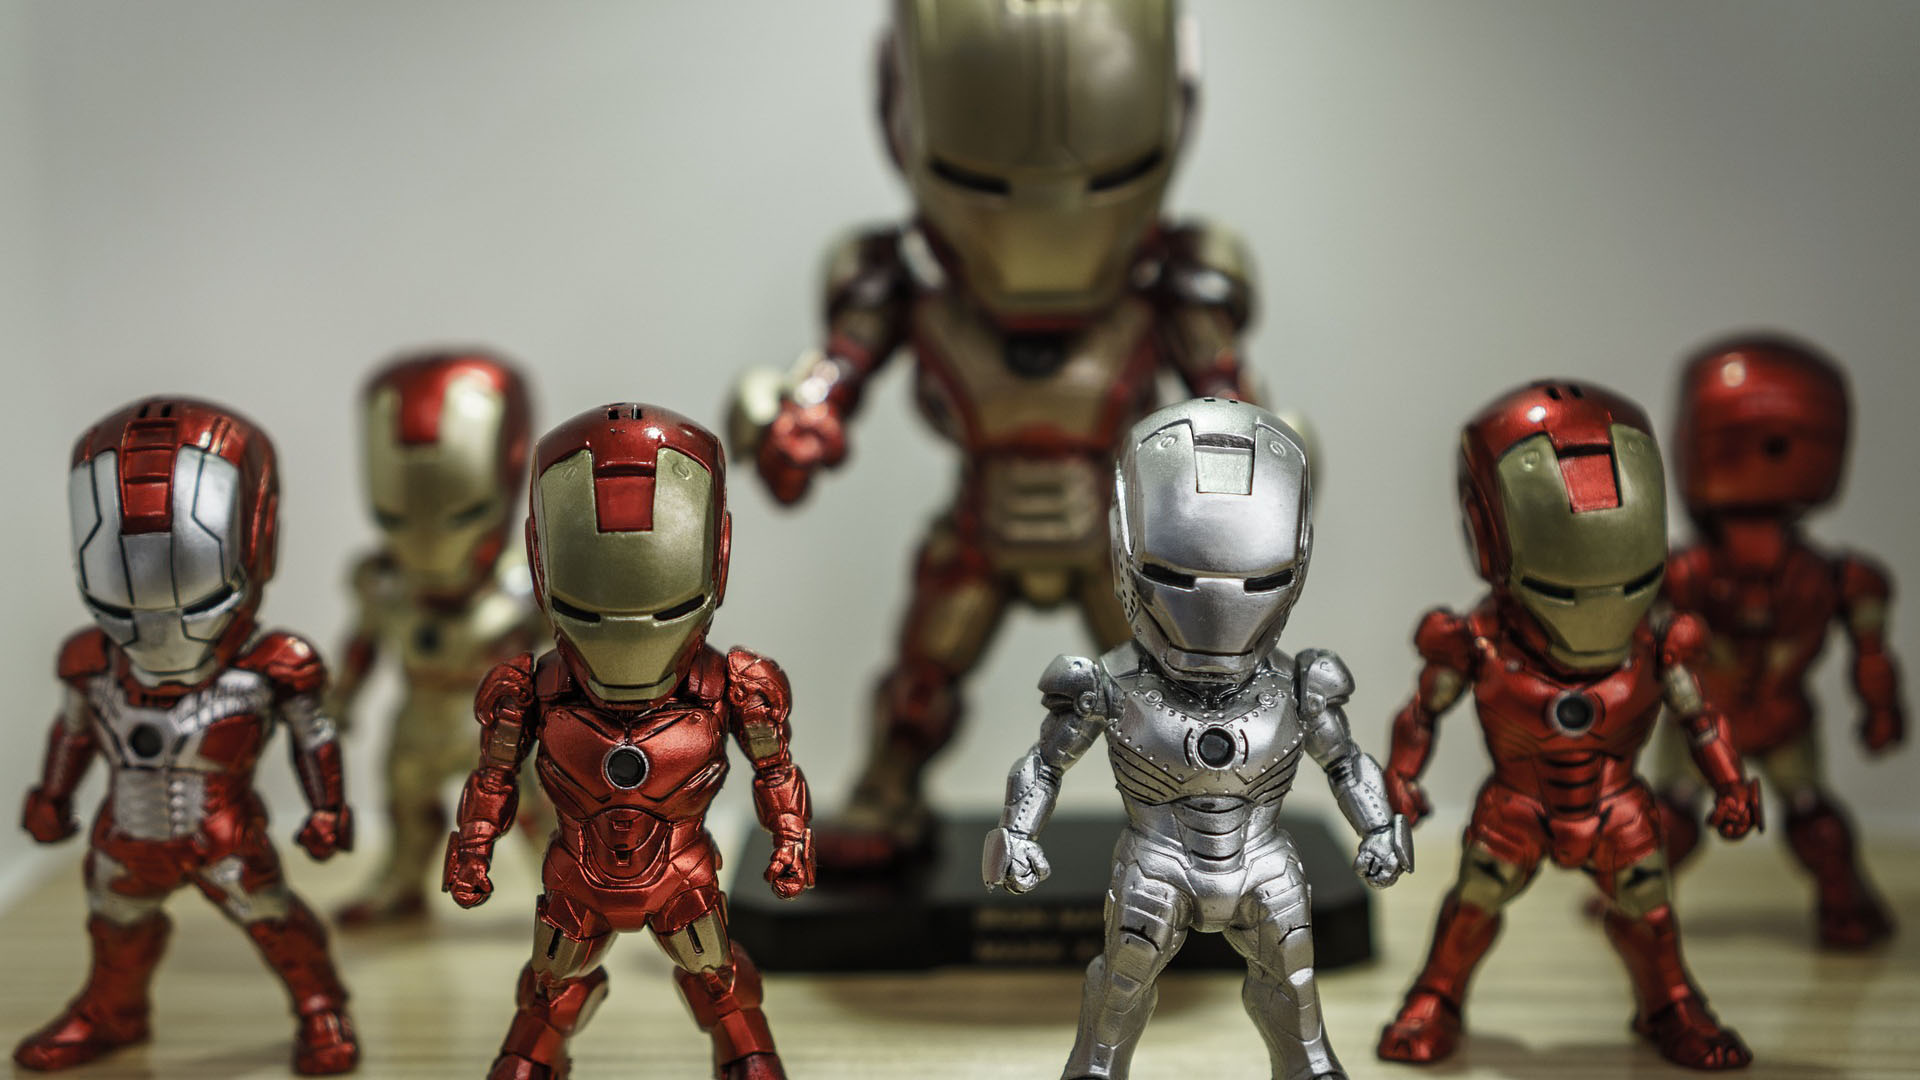 Extra Magnet's advanced marketing automation services can make your HubSpot platform as powerful as an Iron Man army